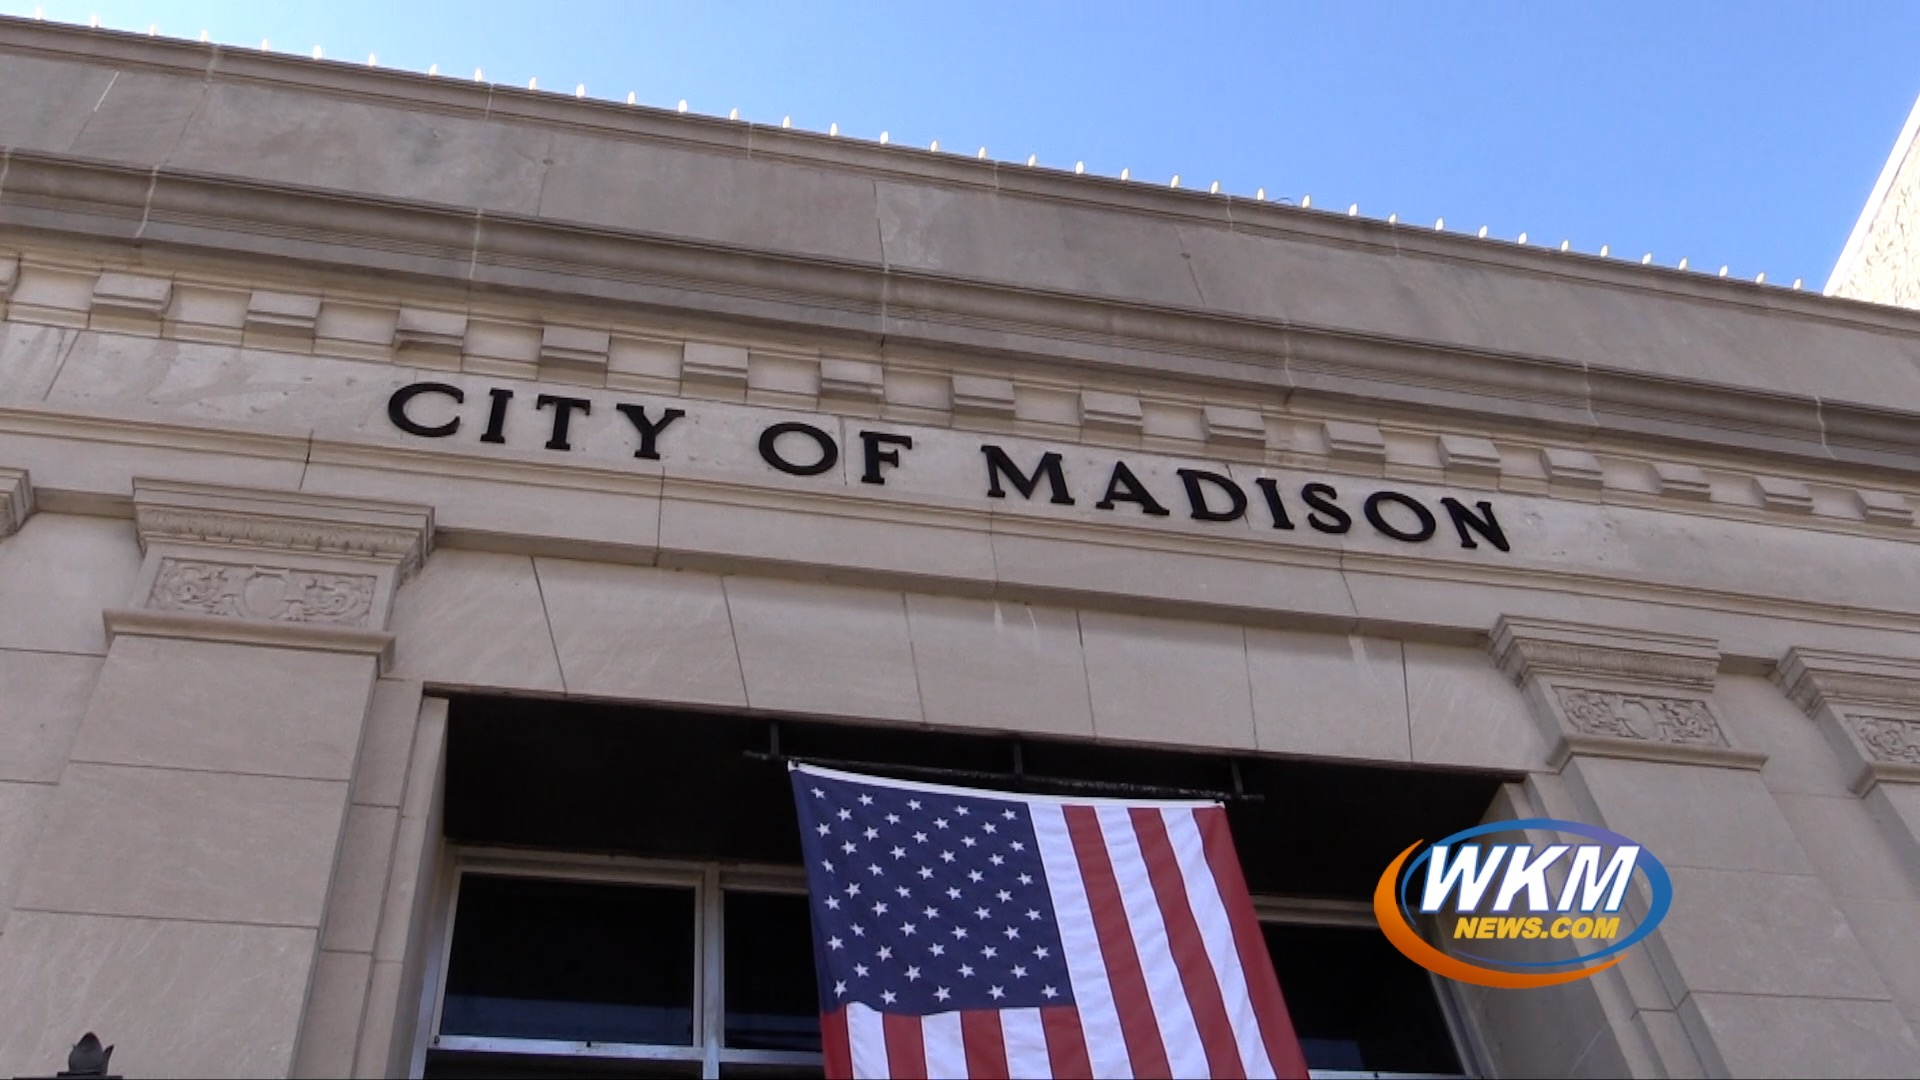 Madison Mayor and City Officials Give COVID-19 Update